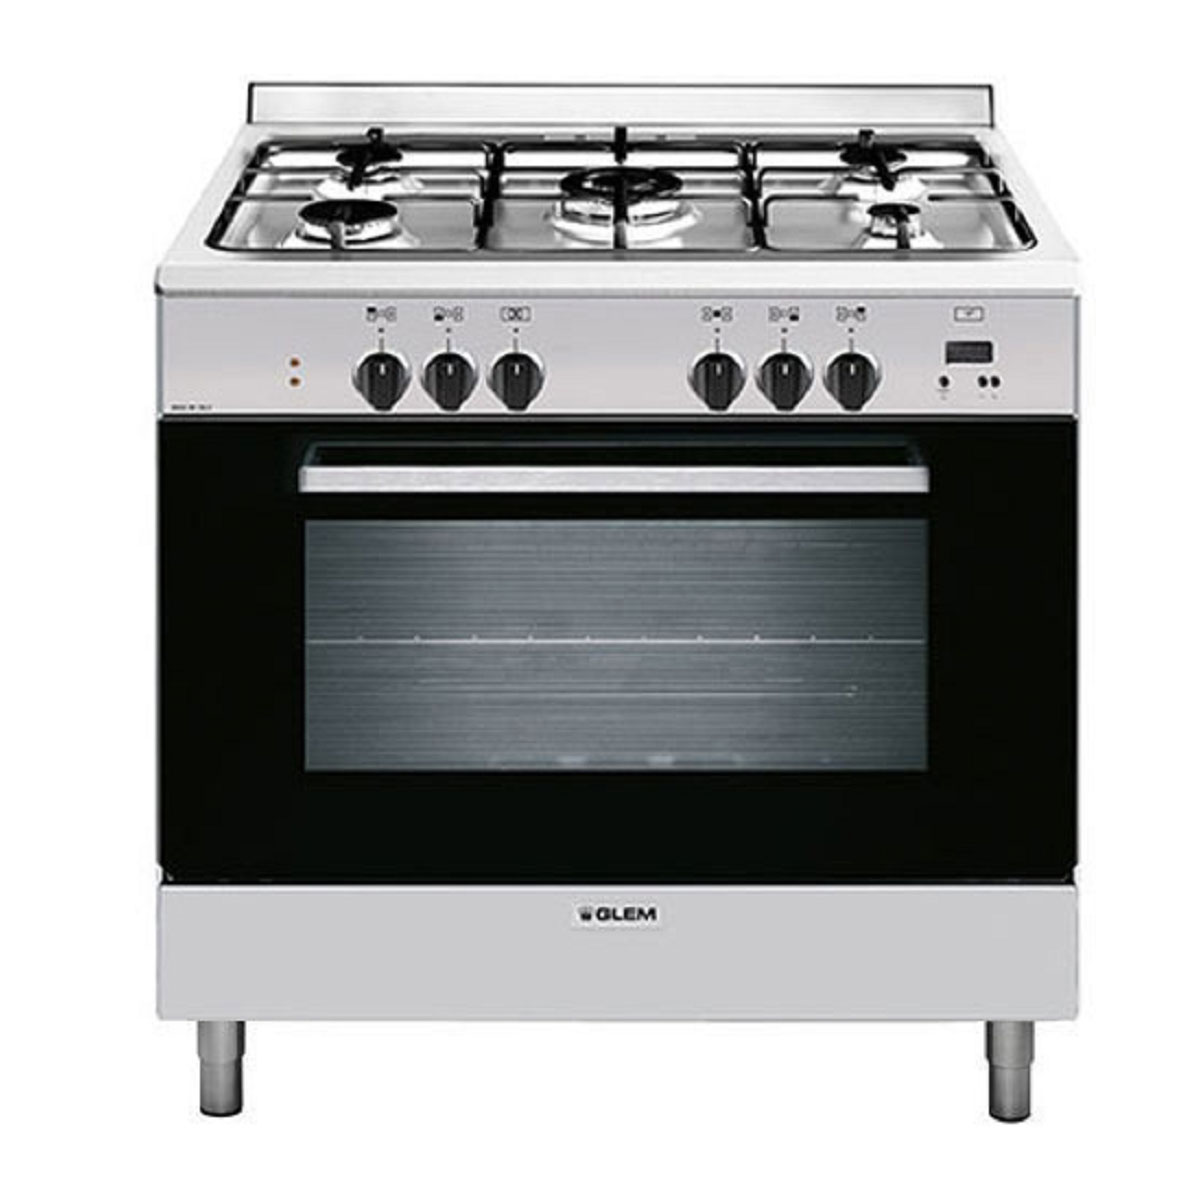 Glem GL965EI Freestanding Dual Fuel Oven/Stove